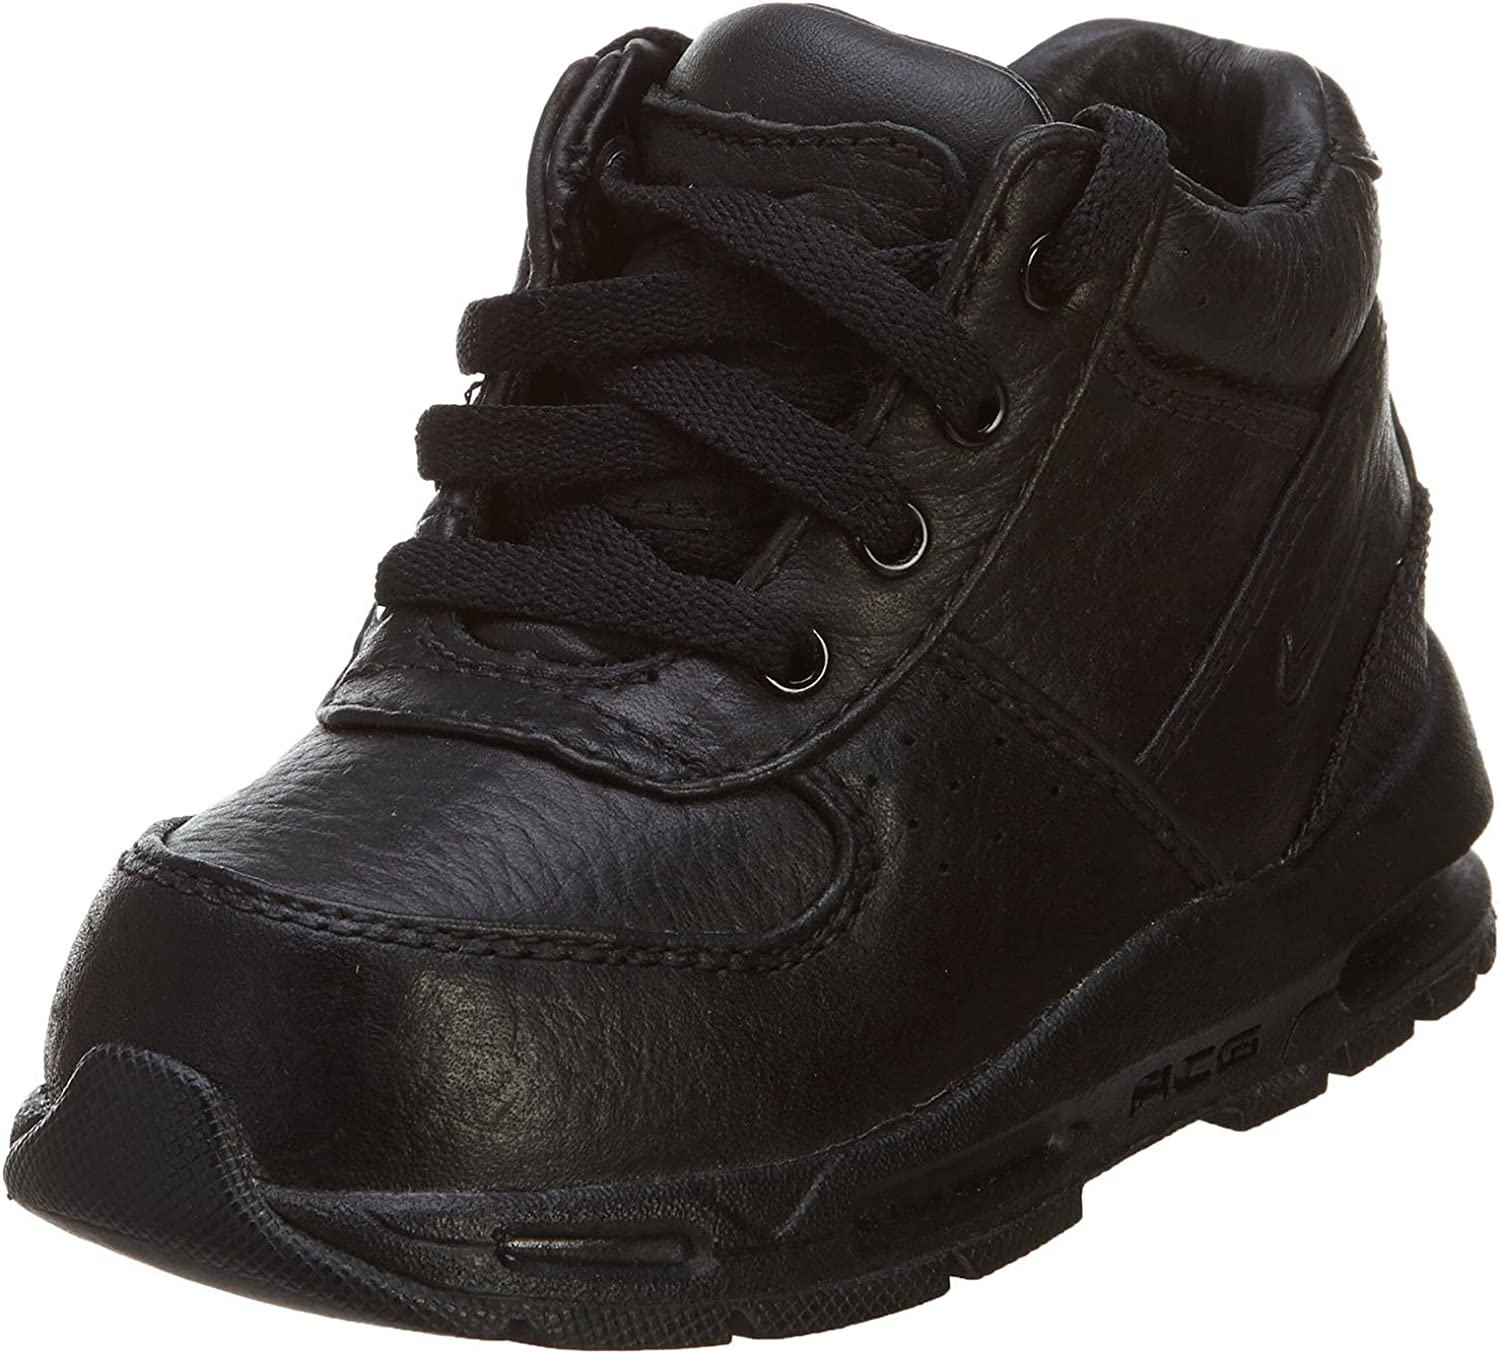 Nike Air Max Goadome Shoes Infant's Boot Rapid rise Size Louisville-Jefferson County Mall